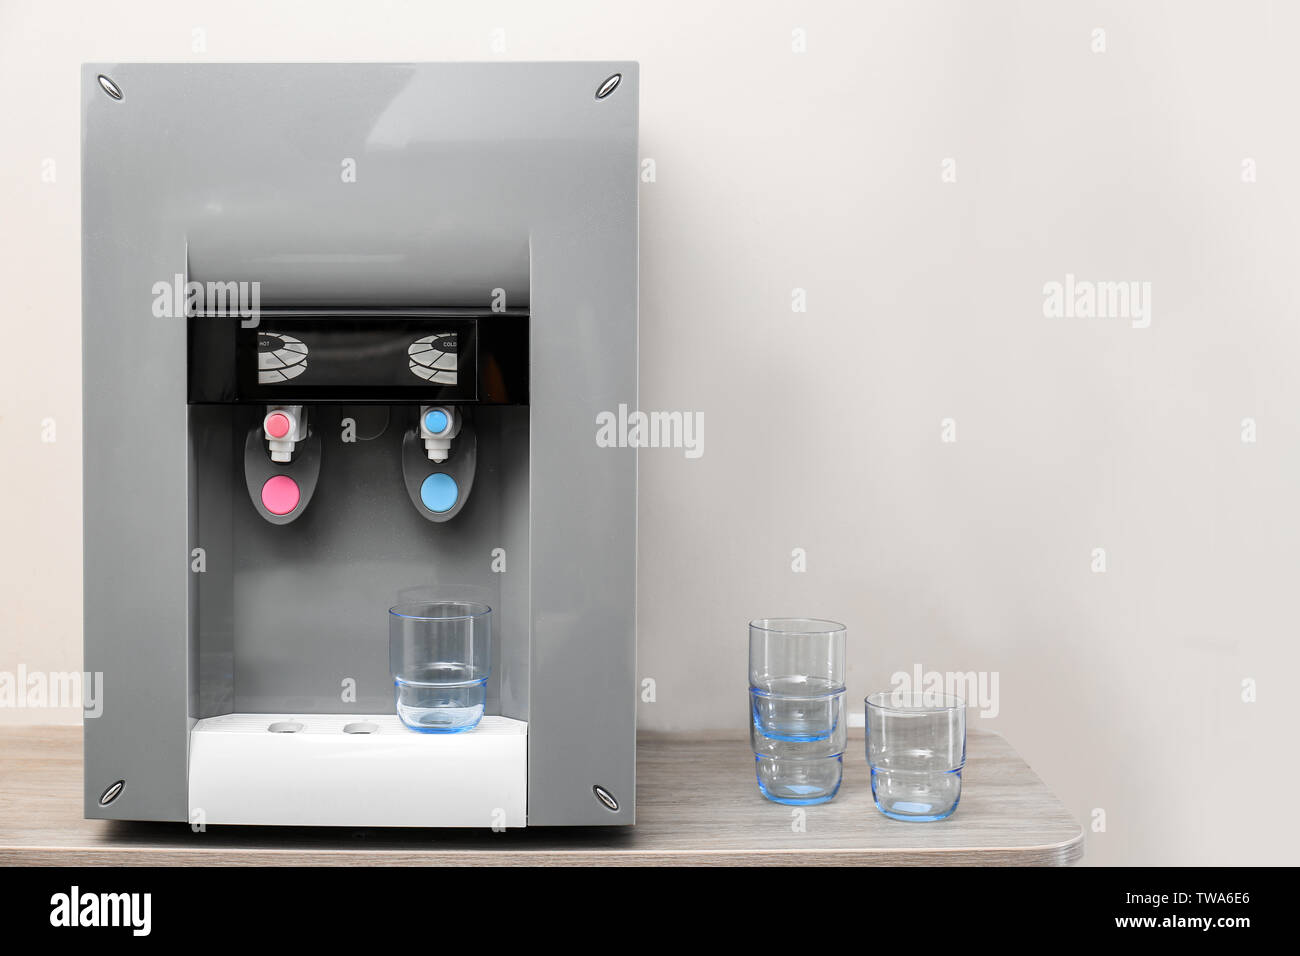 Water cooler on table indoors - Stock Image